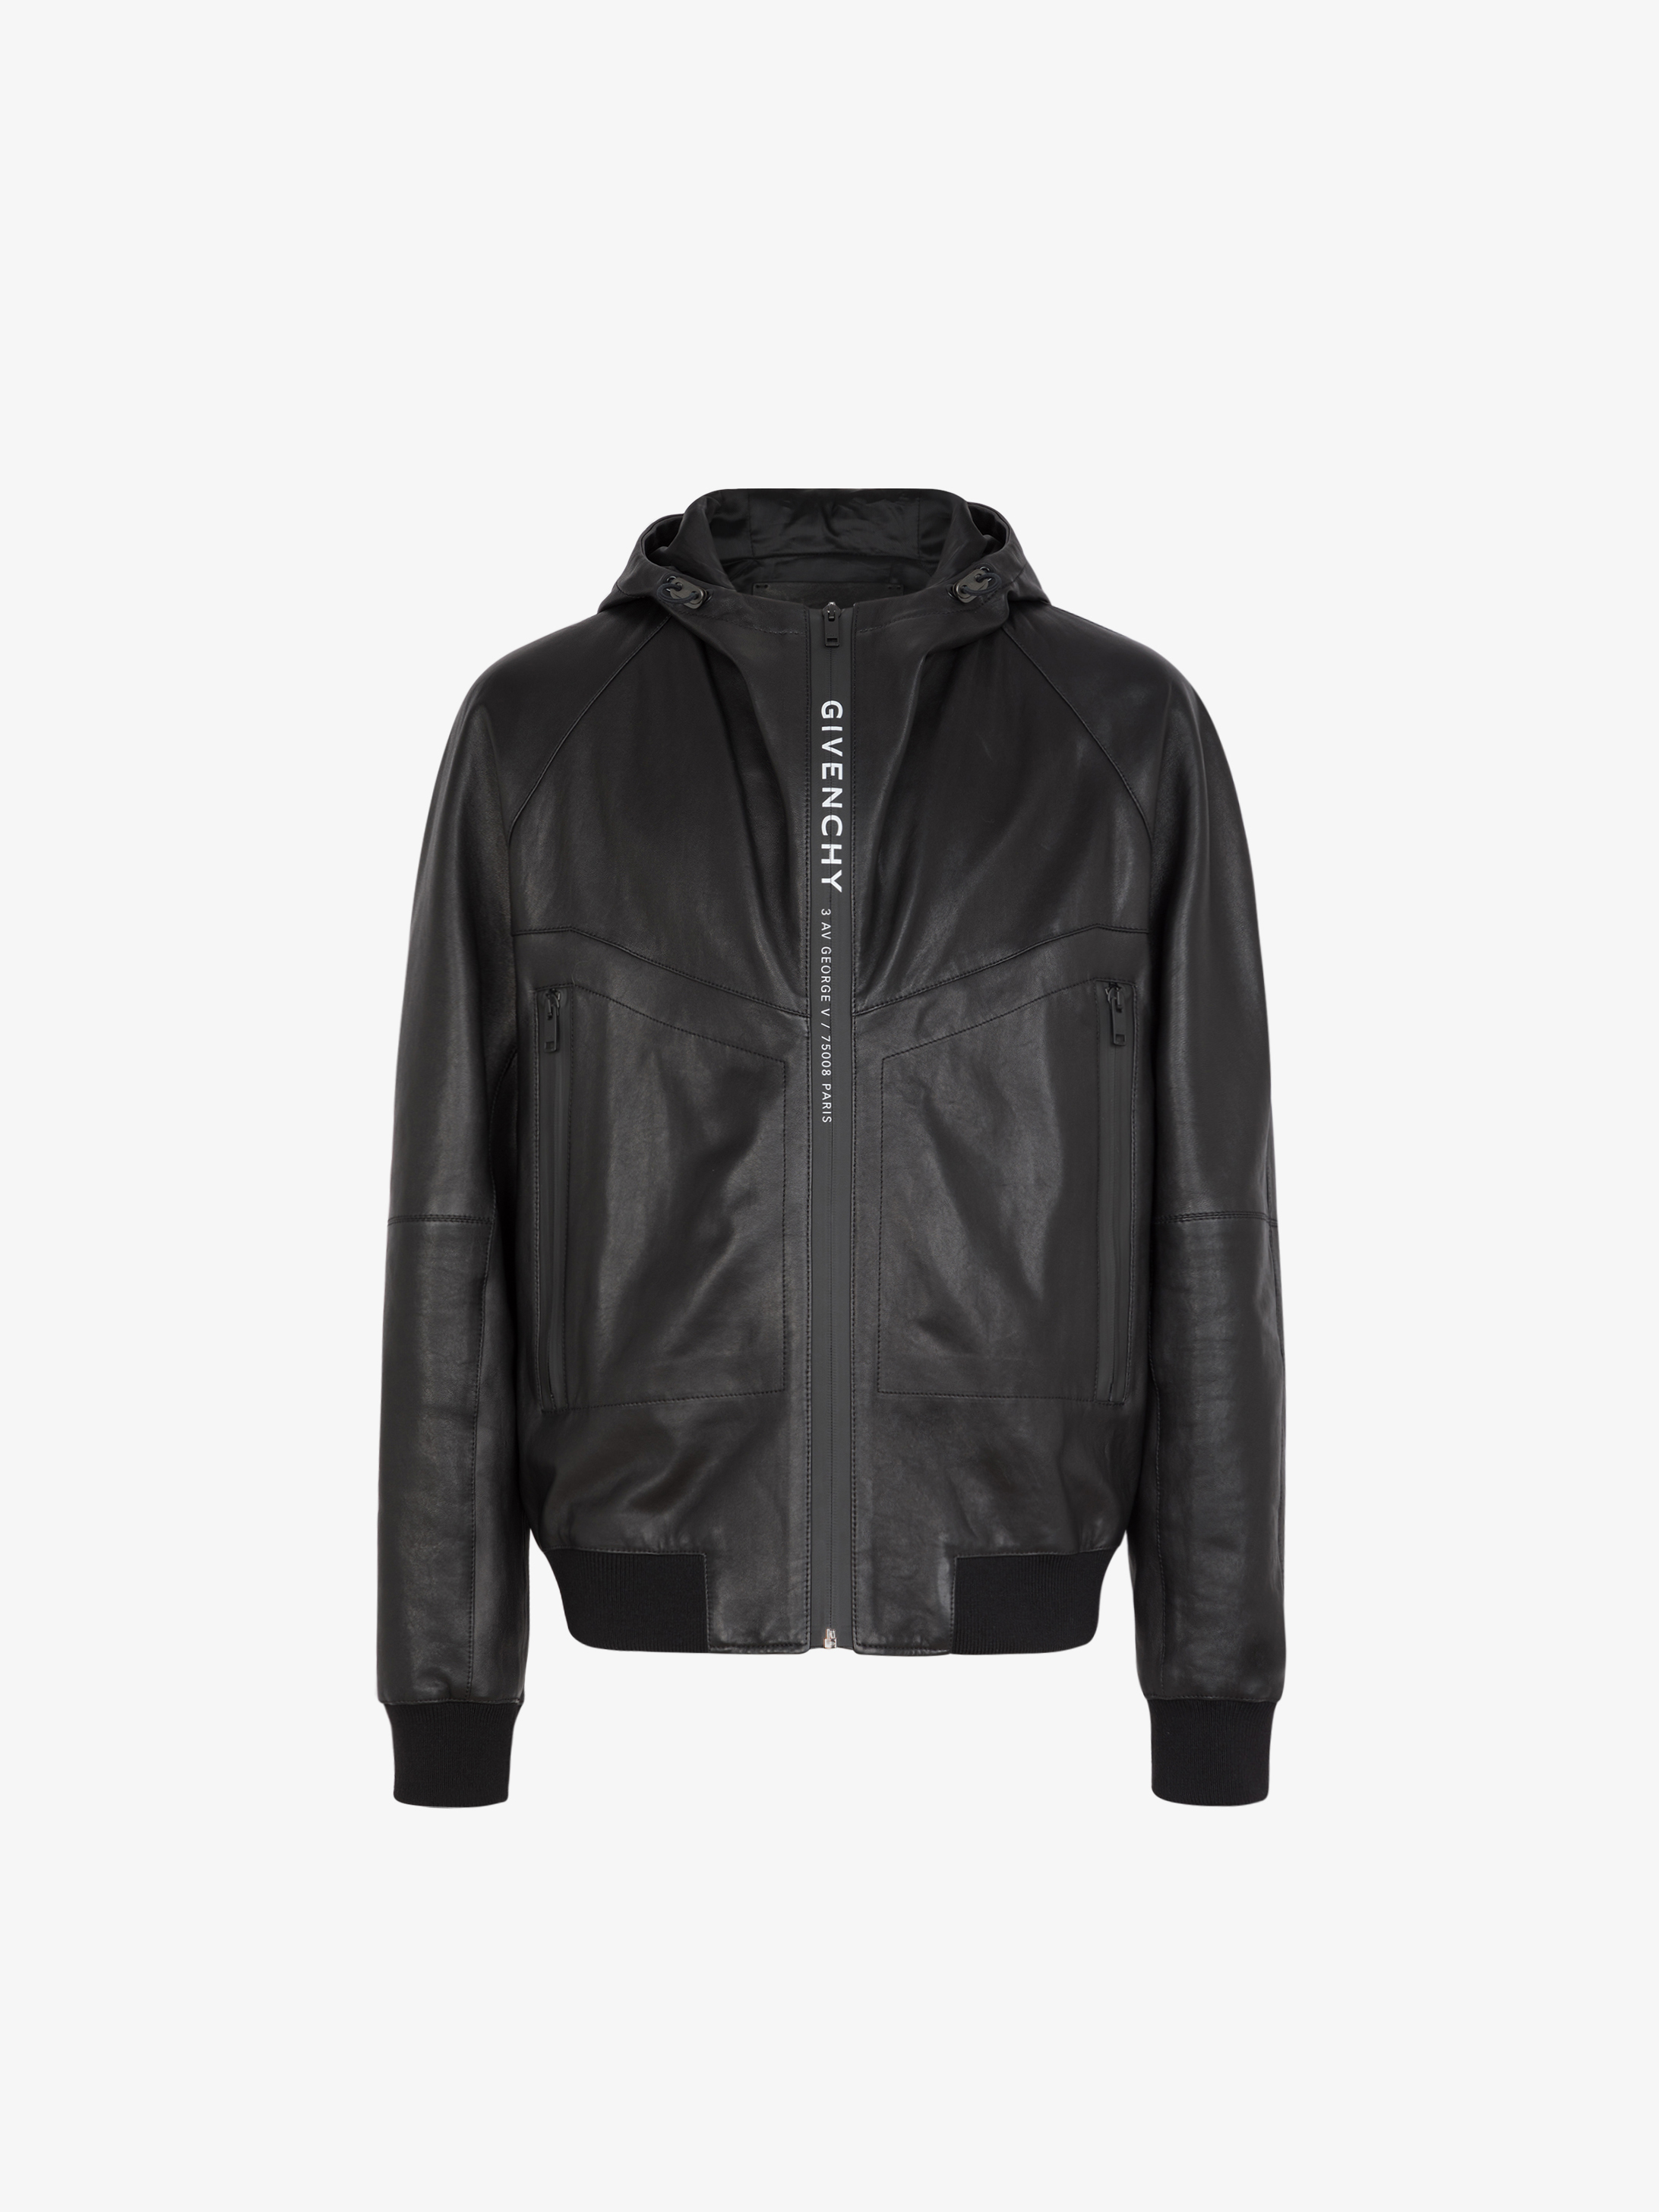 Windbreaker with GIVENCHY ADRESS leather band